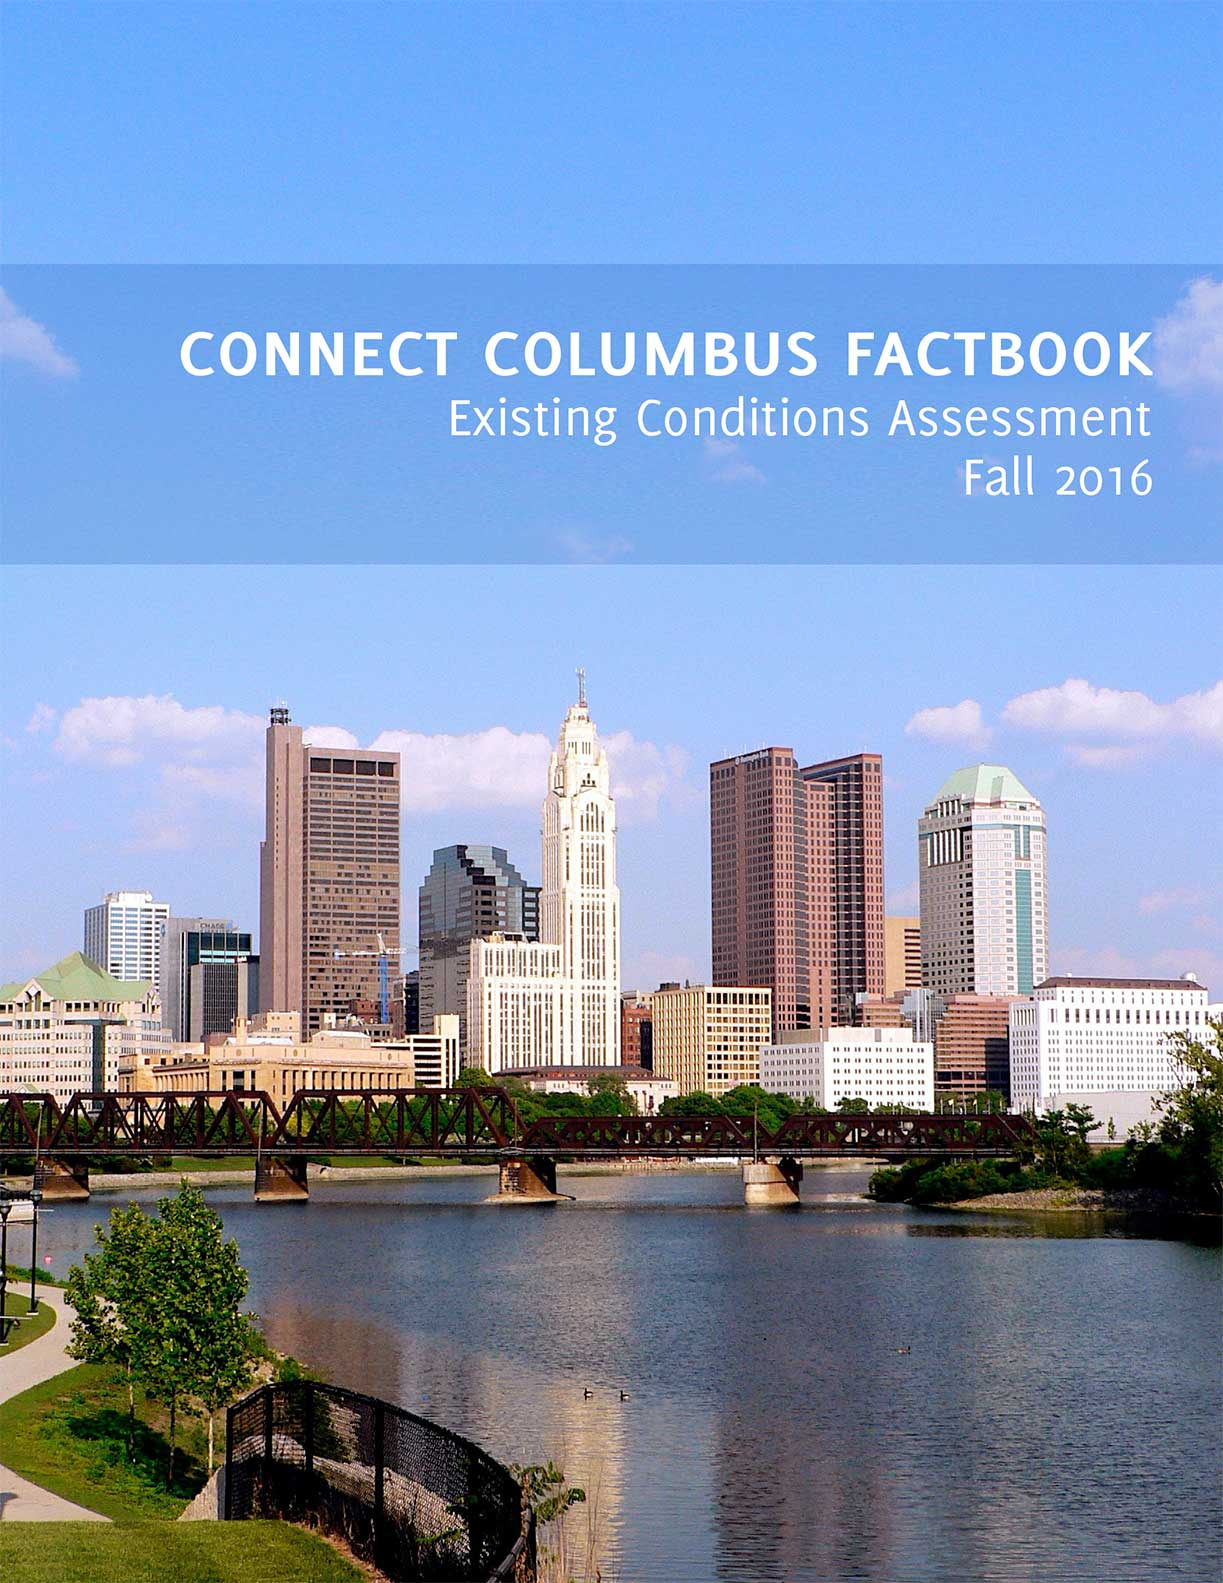 Connect Columbus Factbook Cover